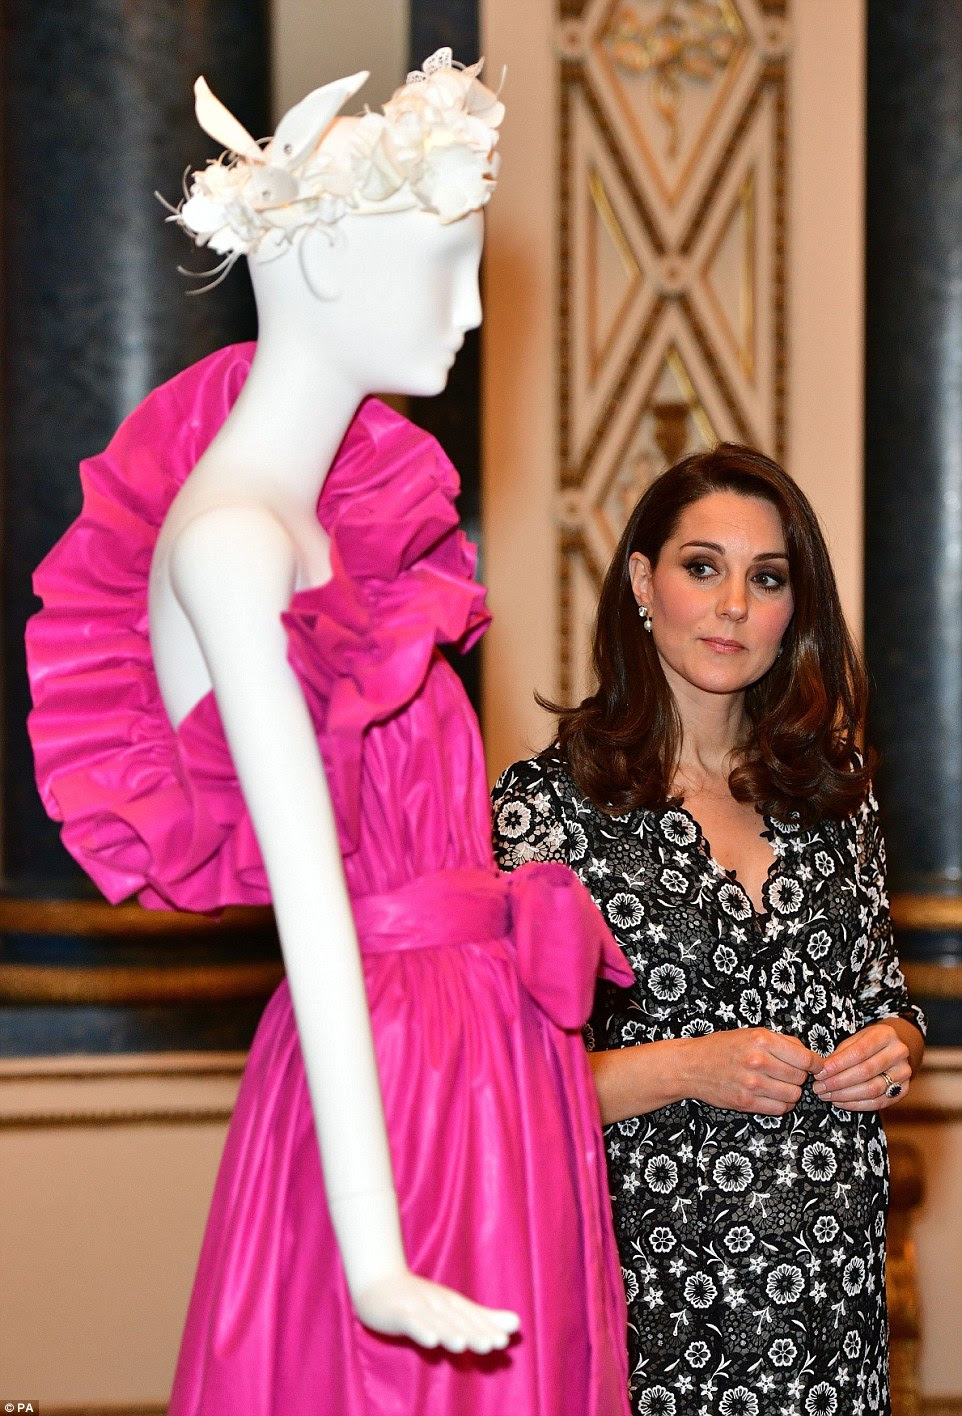 A Duquesa de Cambridge inspeciona um conjunto de rosa de néon enquanto ela e Sophie recebem o lançamento do Commonwealth Fashion Exchange no Buckingham Palace's Music Room